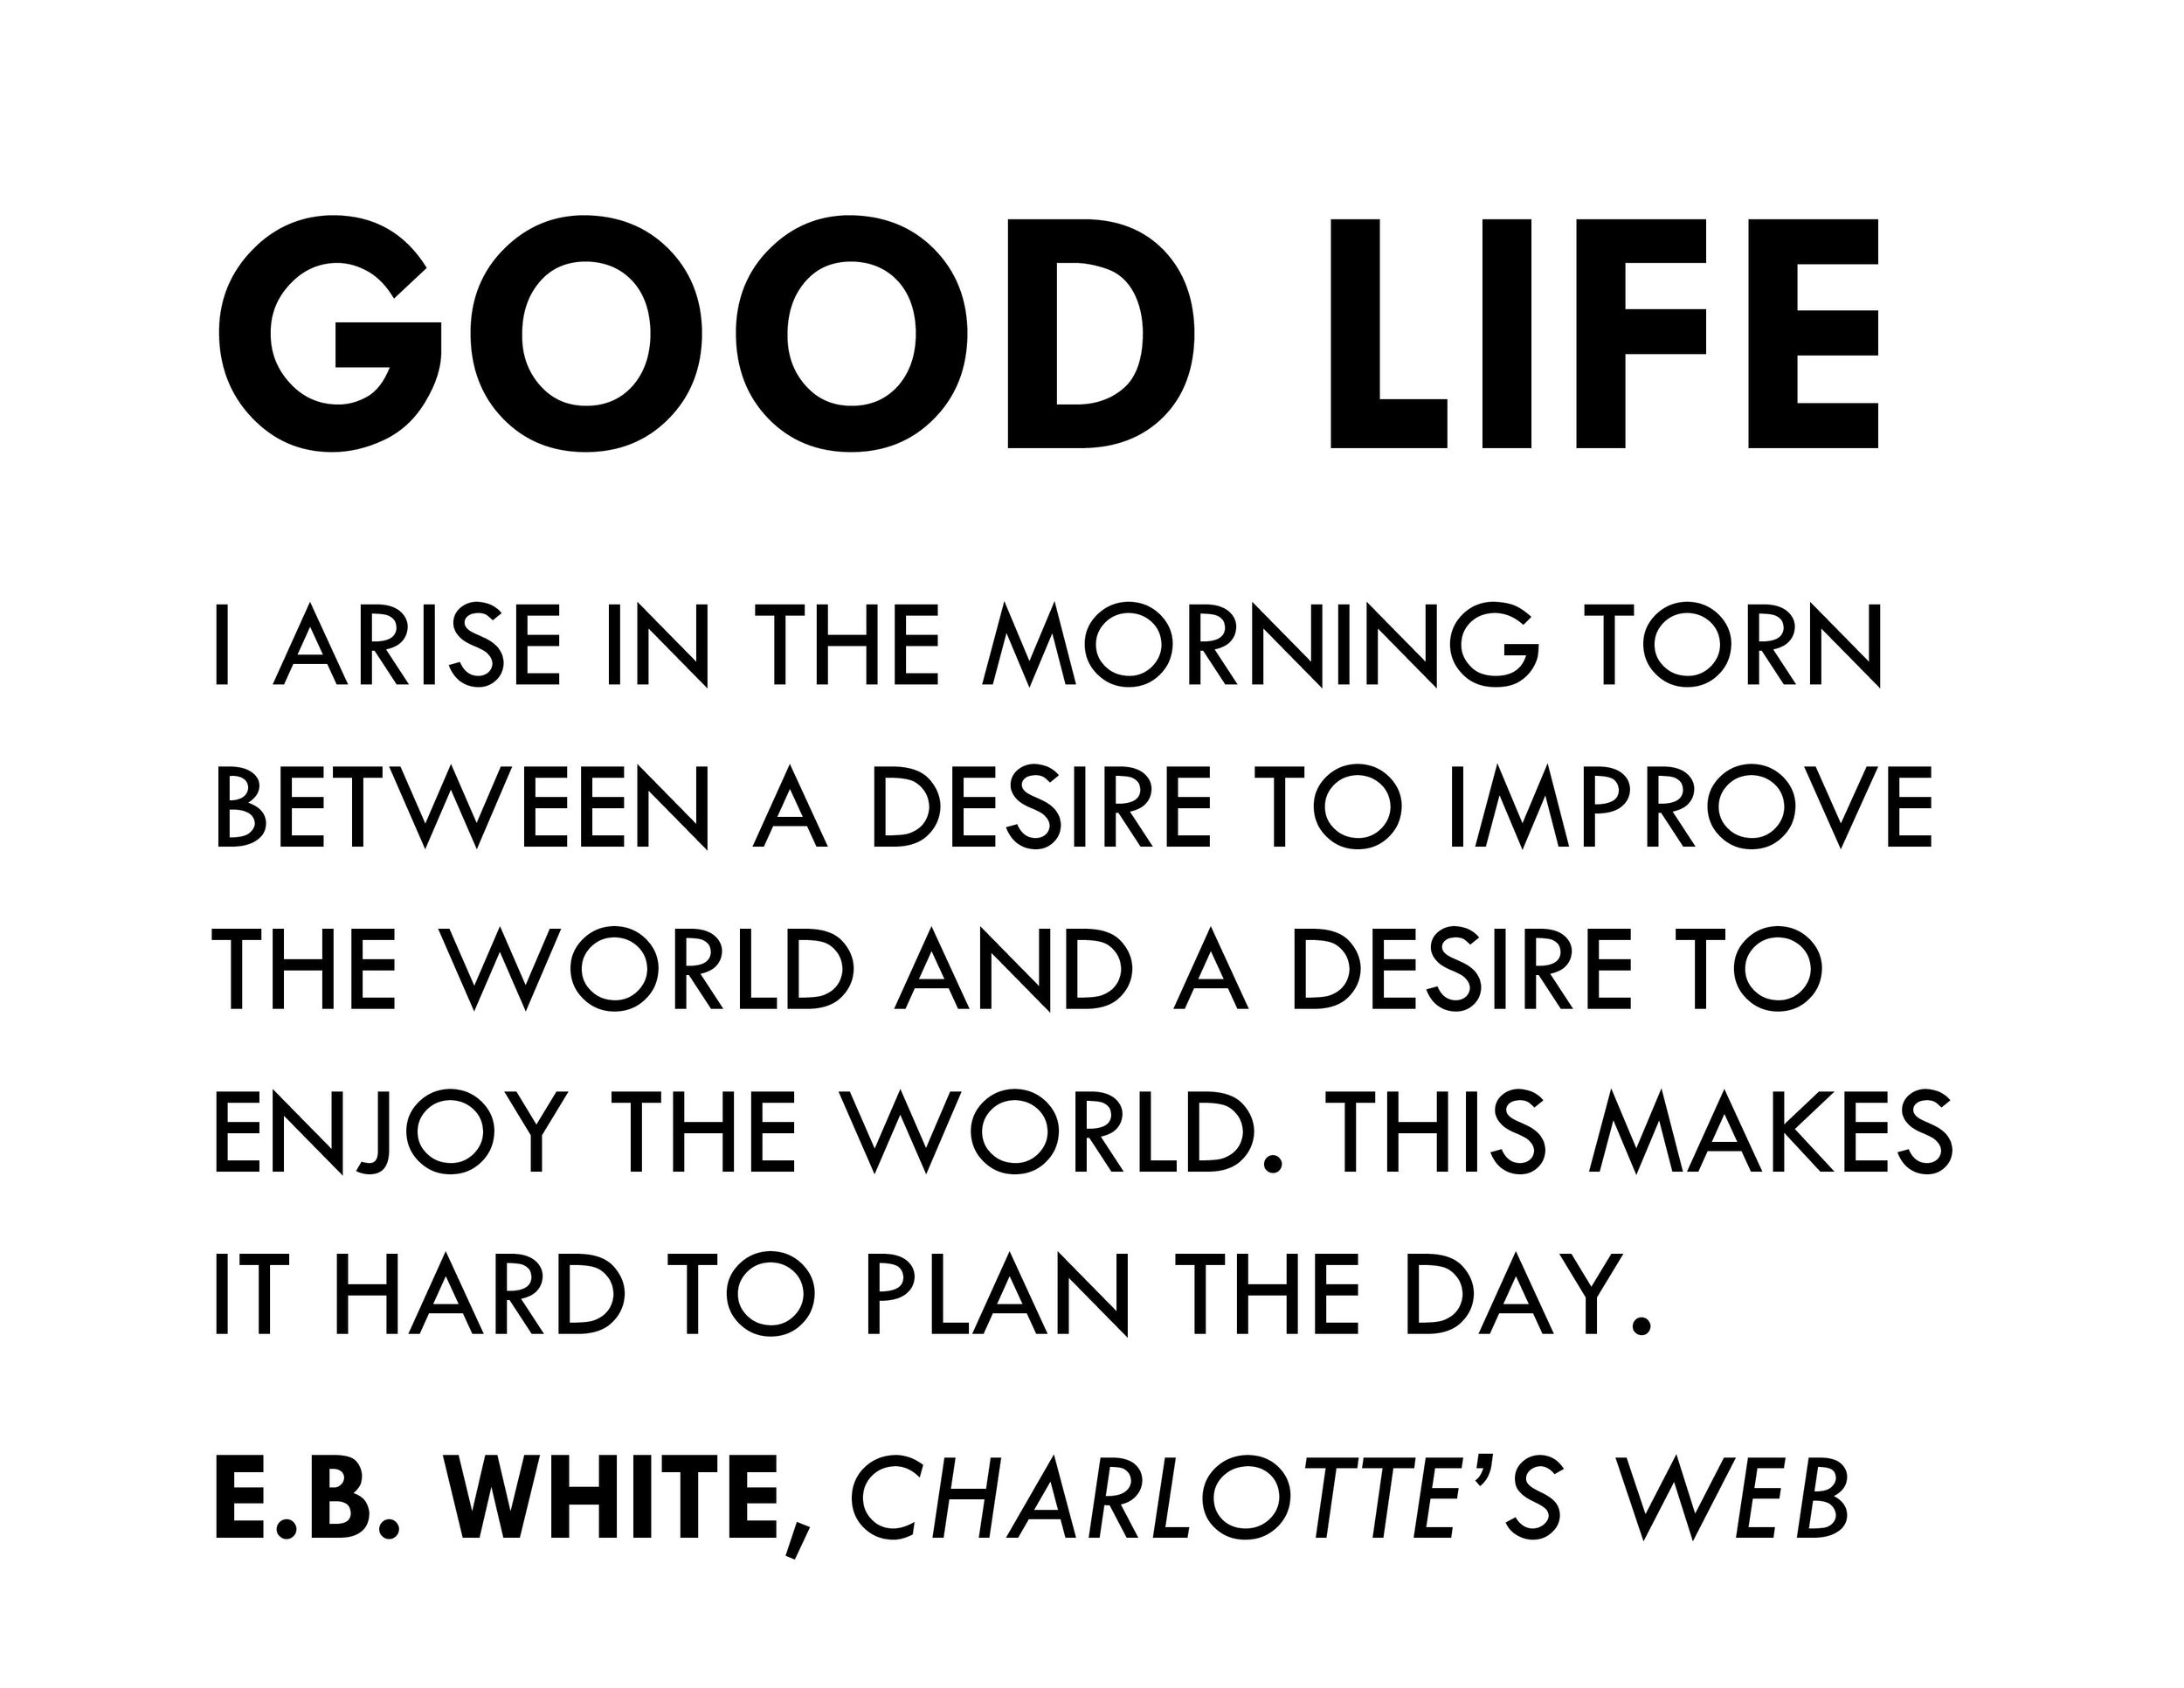 GROUP THINK - 06.2017 - GOOD LIFE - E.B. White.jpg